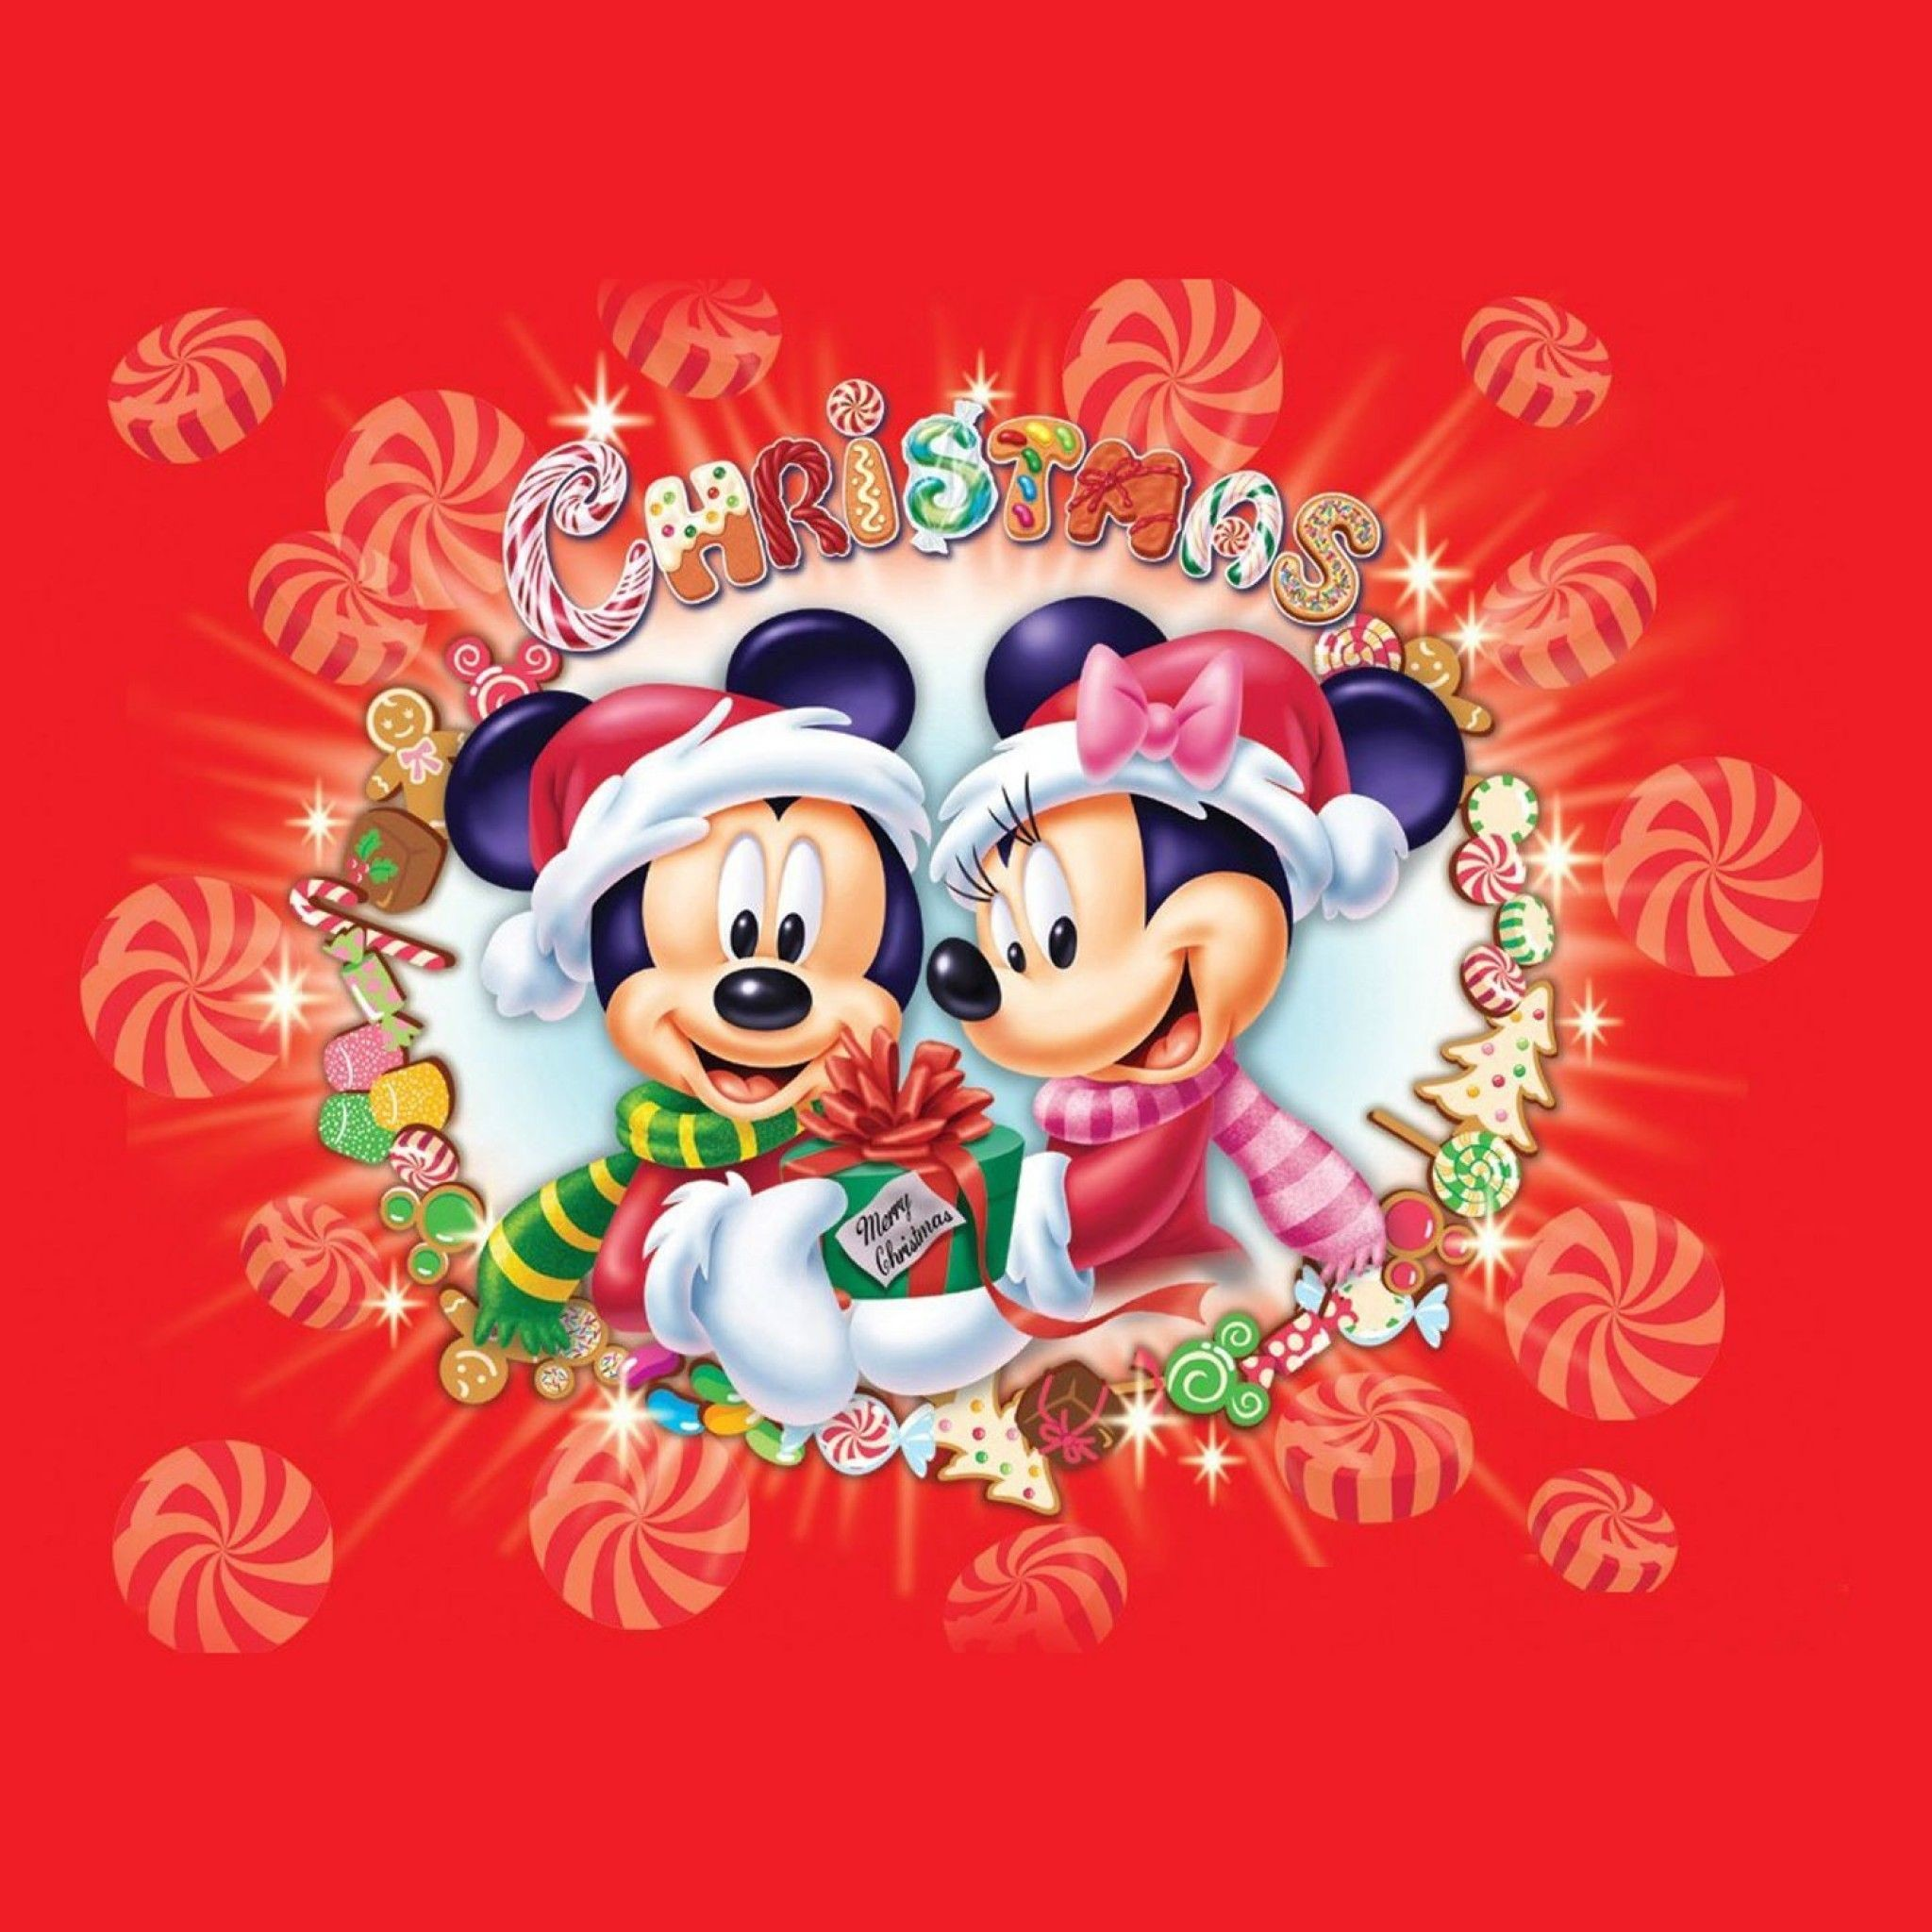 Walt Disney Christmas Wallpaper.Disney Christmas Wallpapers 71 Background Pictures